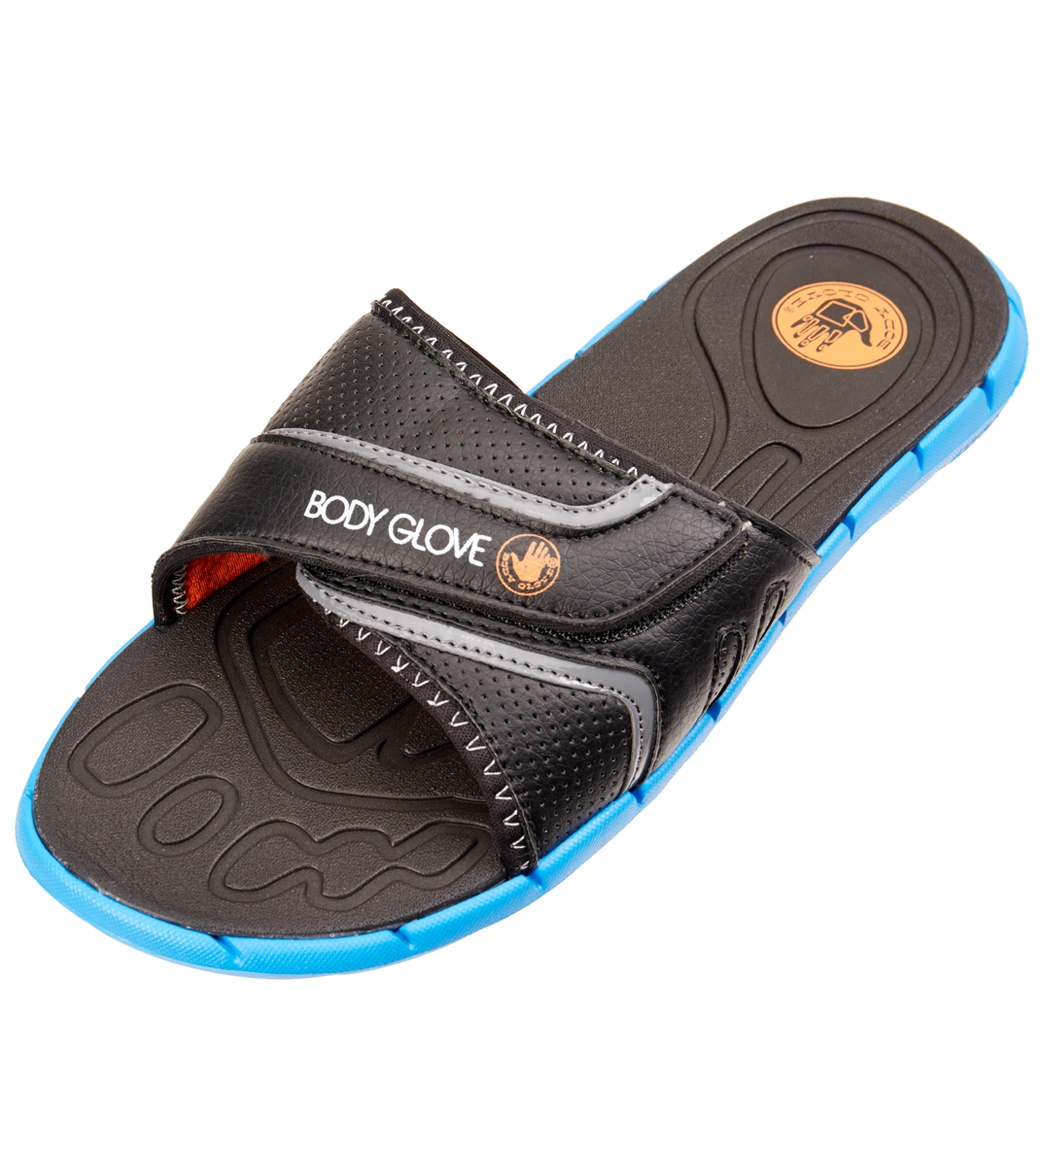 Body Glove® Strapped Slide Sandal cKWyE